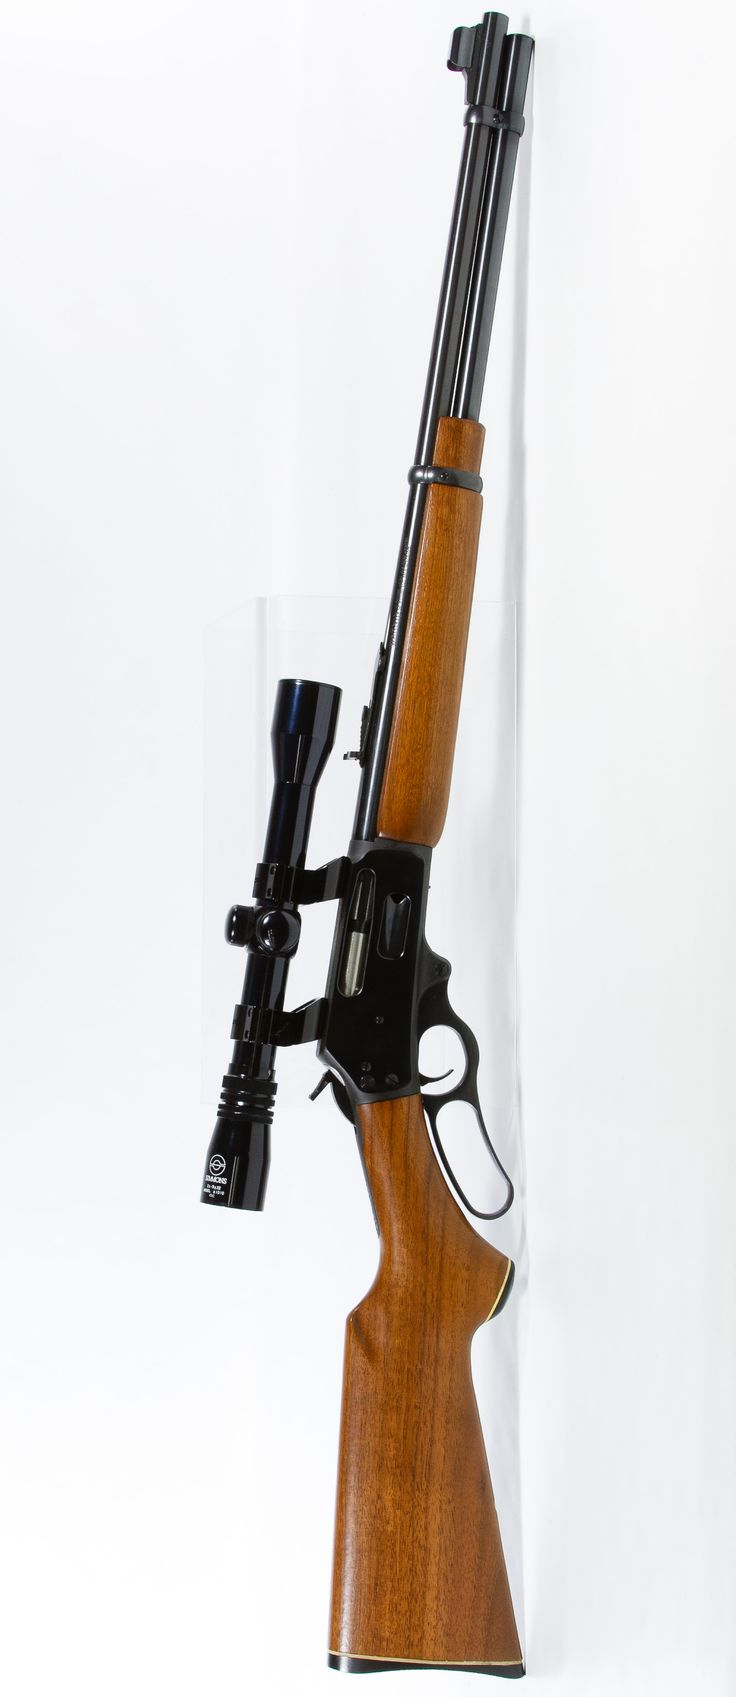 Lot 269: Marlin Model 336CS 30-30 Rifle with Scope (Serial #16025607); Side load lever action rifle; together with Simmons 3x-9x32 scope and soft case